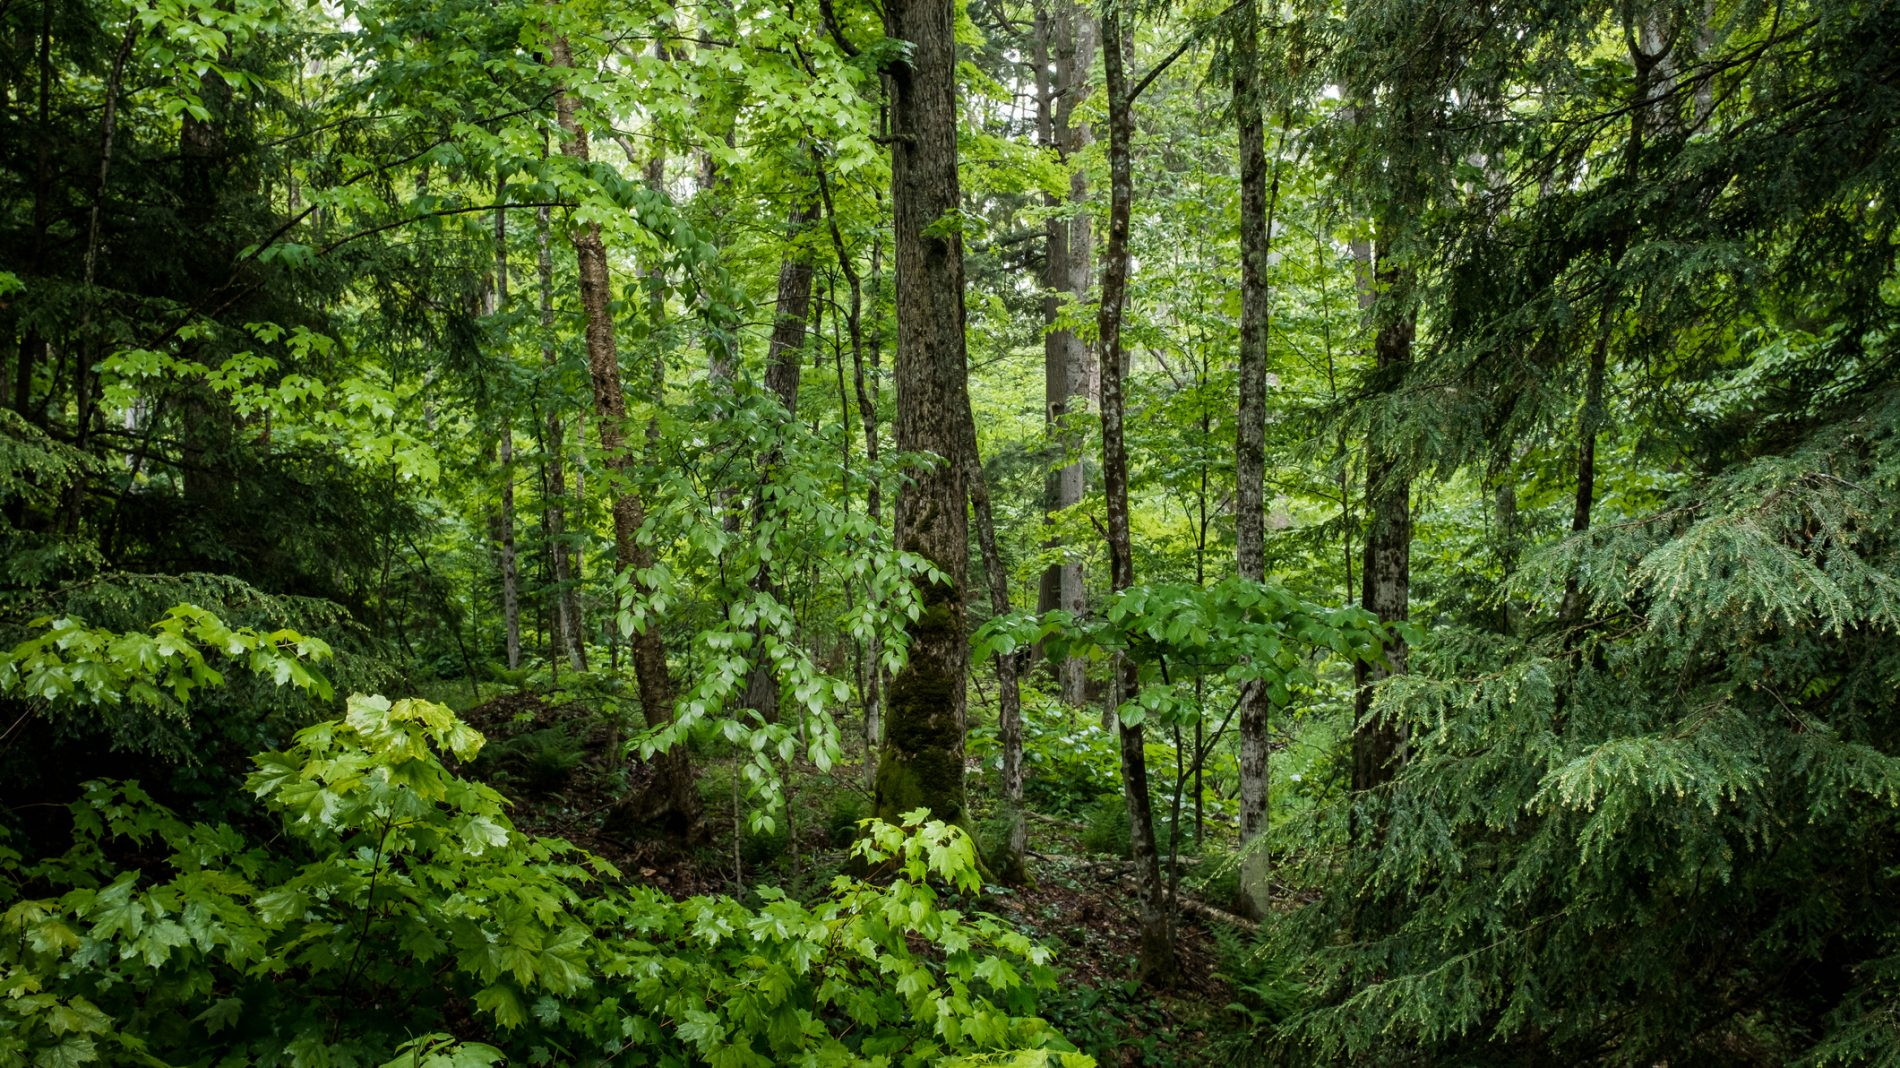 A quiet part of a forest